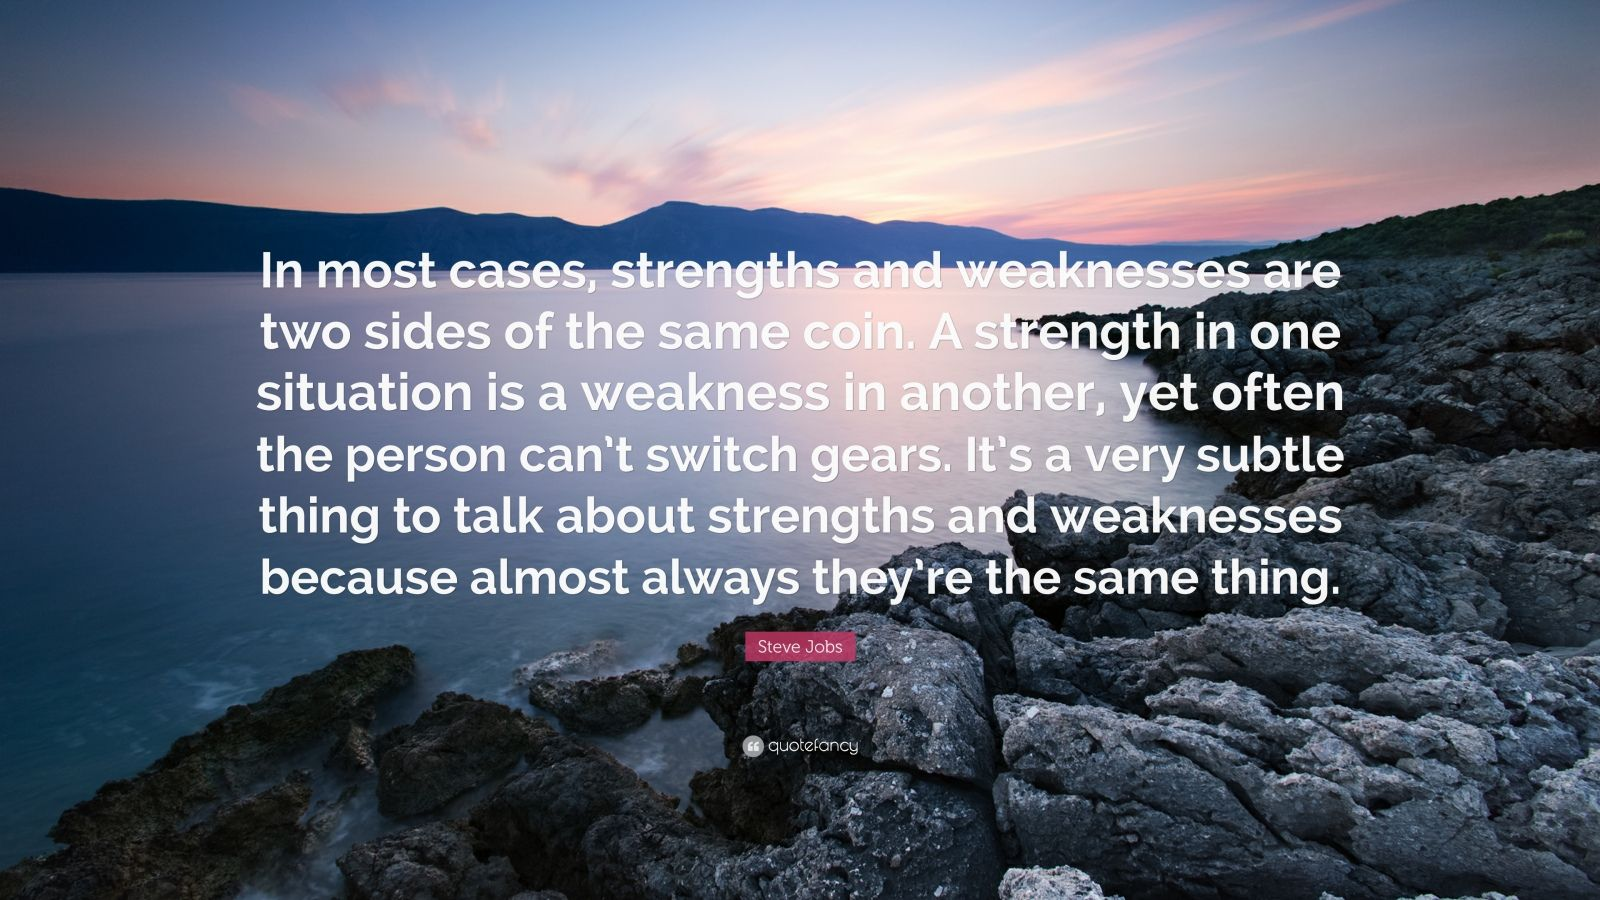 "Steve Jobs Quote: ""In most cases, strengths and weaknesses are two sides of the same coin. A strength in one situation is a weakness in another, yet often the person can't switch gears. It's a very subtle thing to talk about strengths and weaknesses because almost always they're the same thing."""